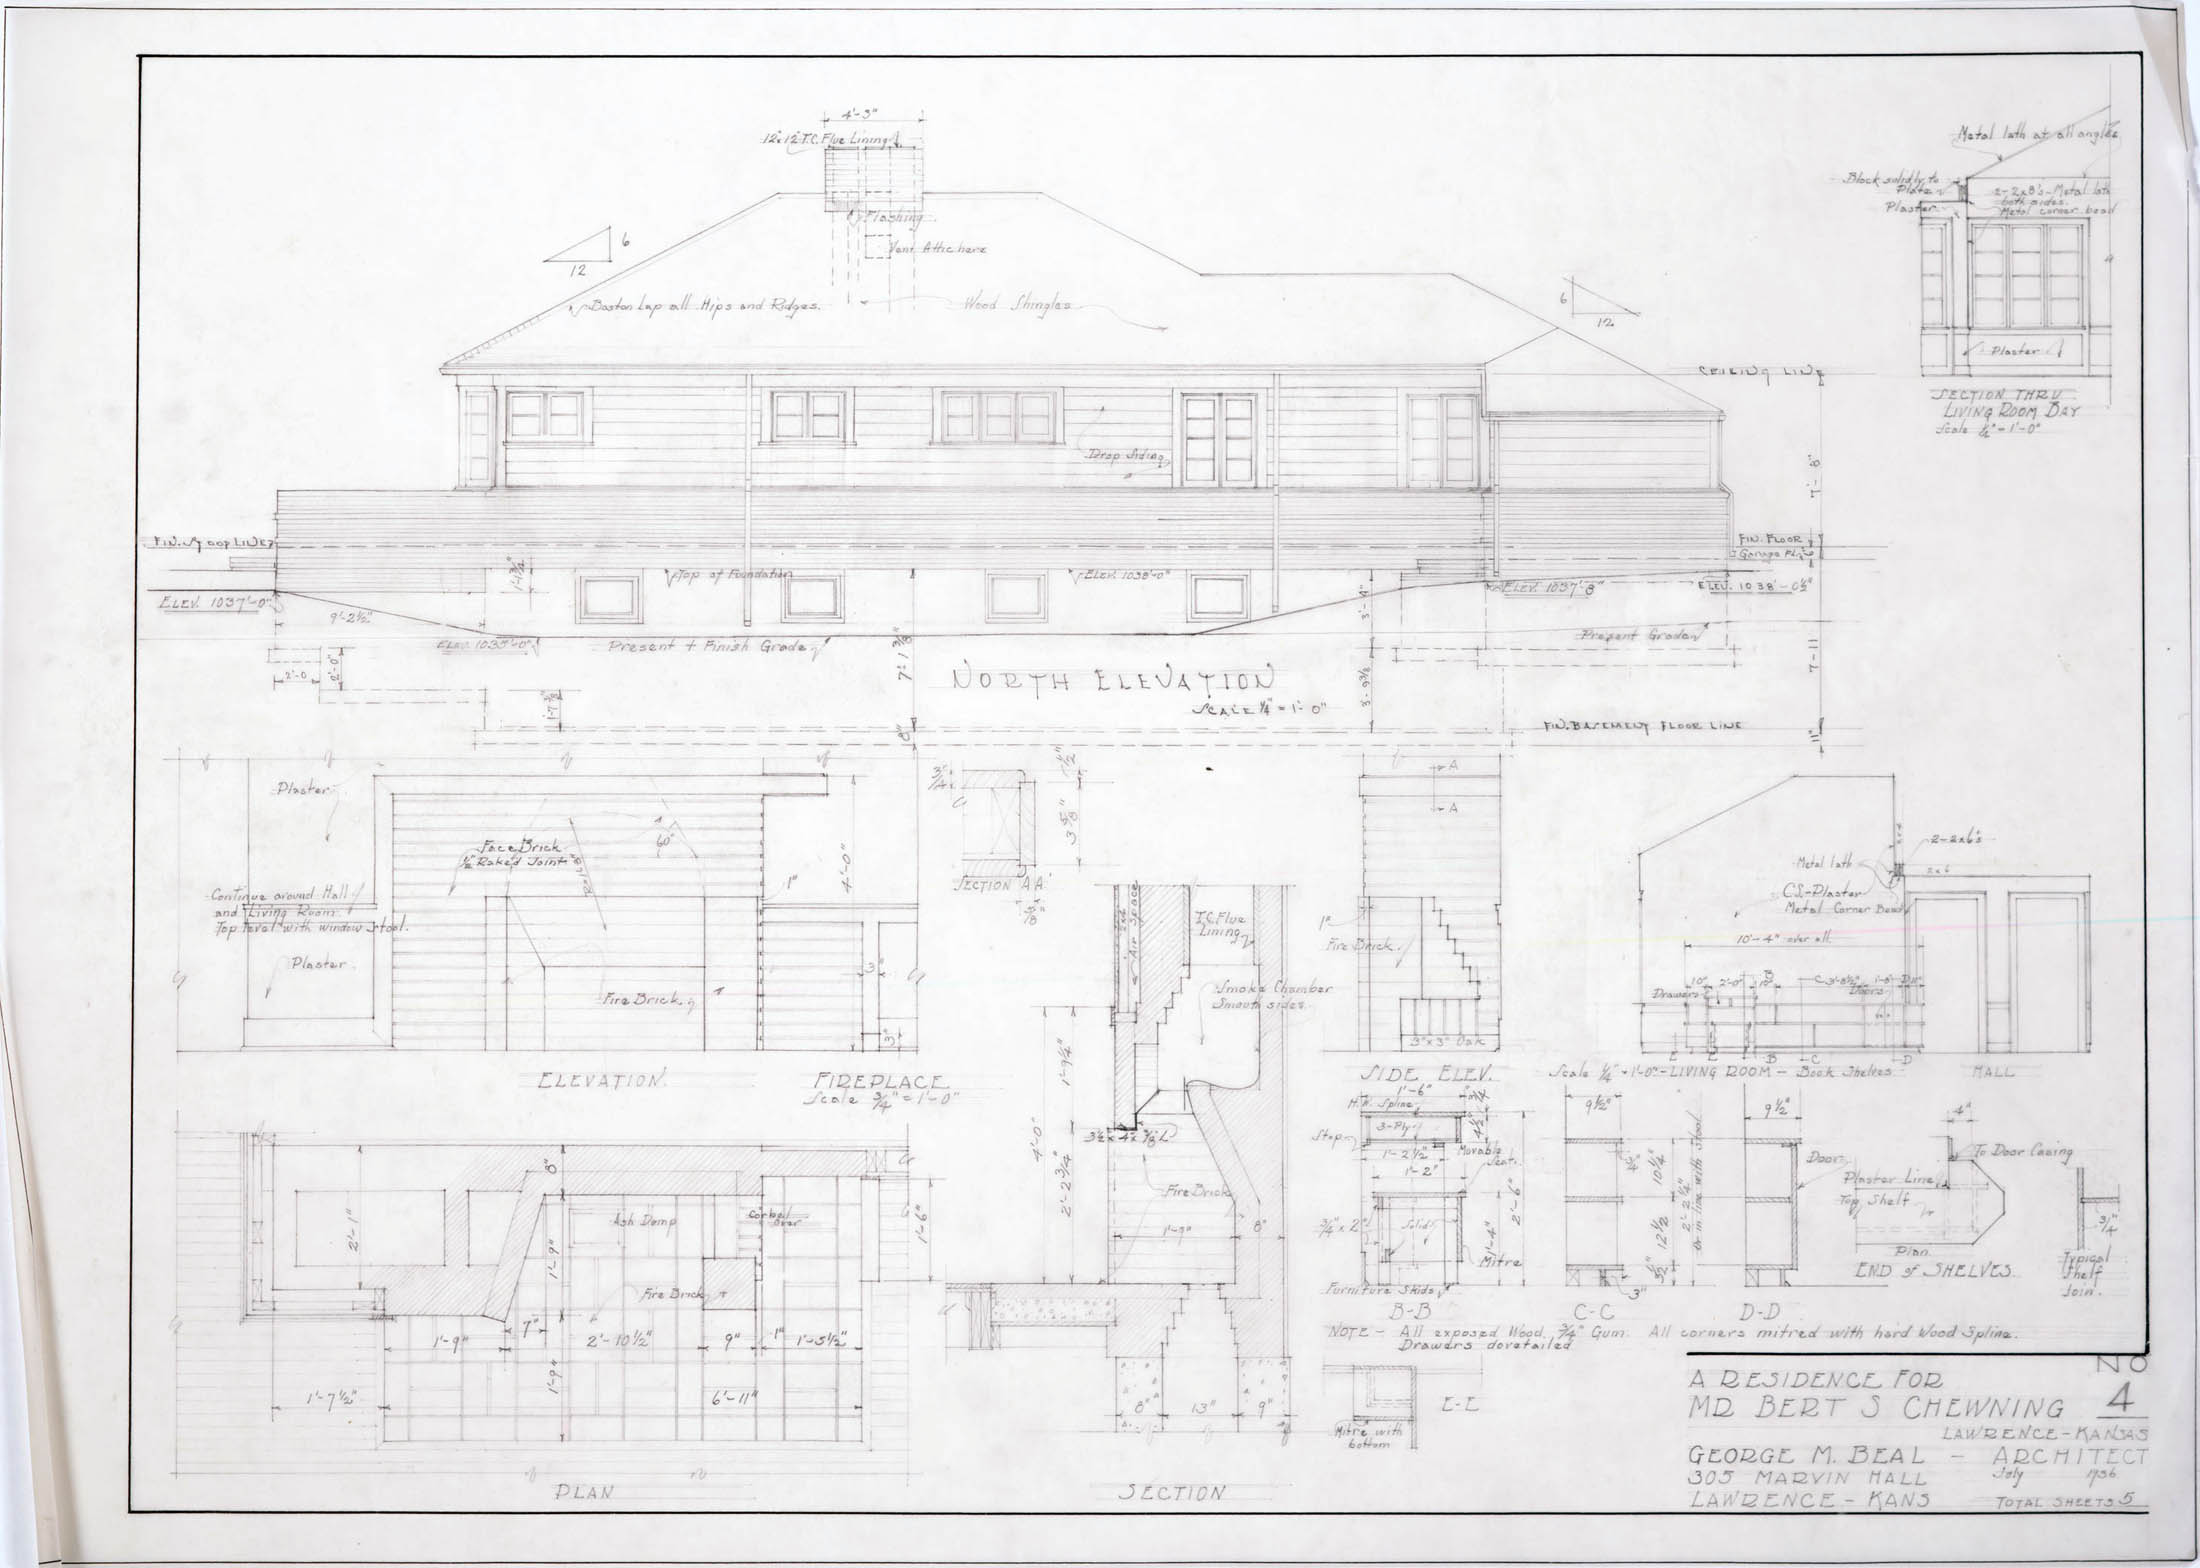 North N Home Plan And Elevation : Architectural plans click images to expand « lawrence